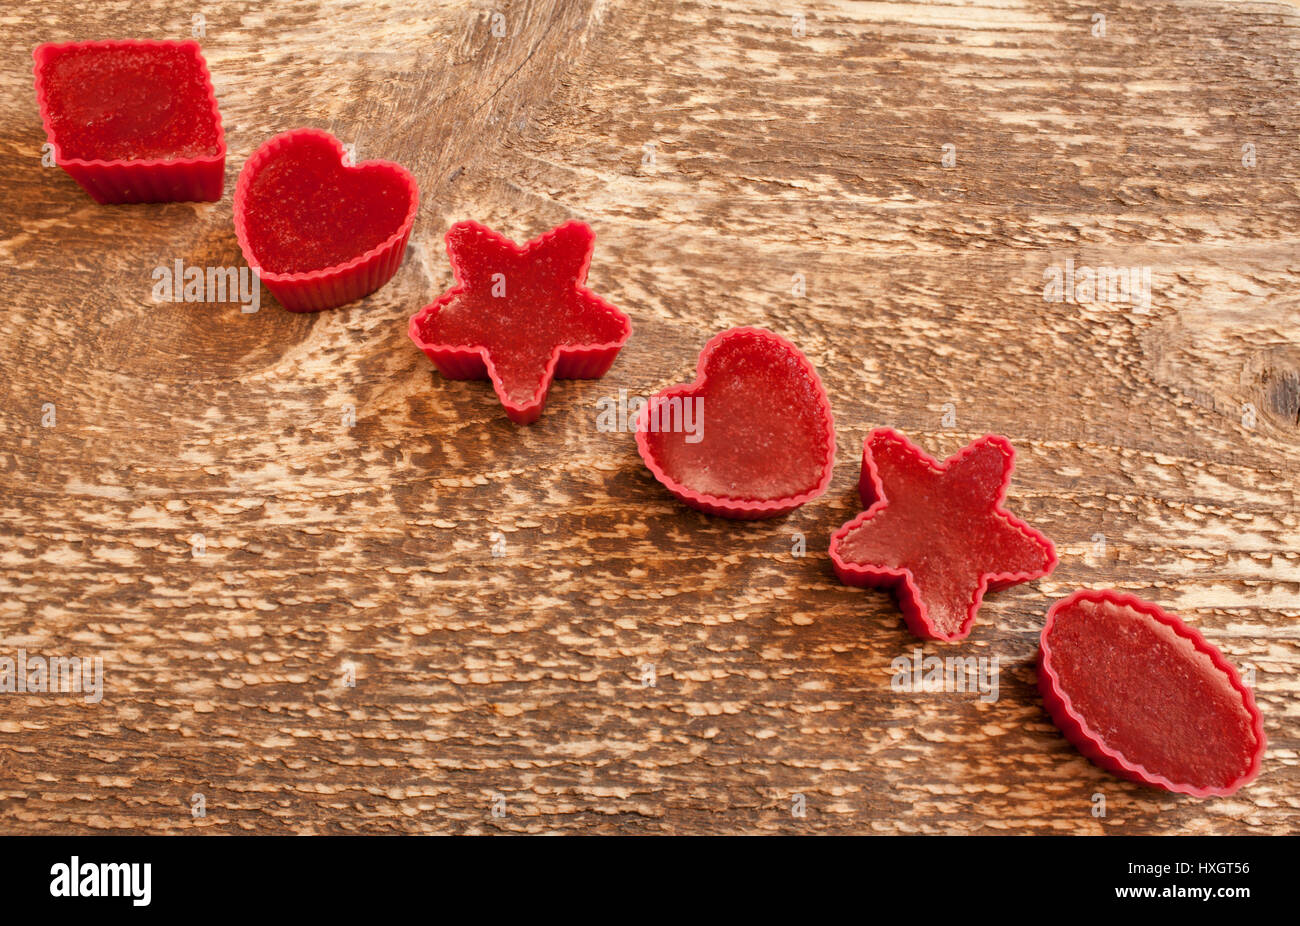 handmade Red marmalade in molds on wooden background flat lay - Stock Image